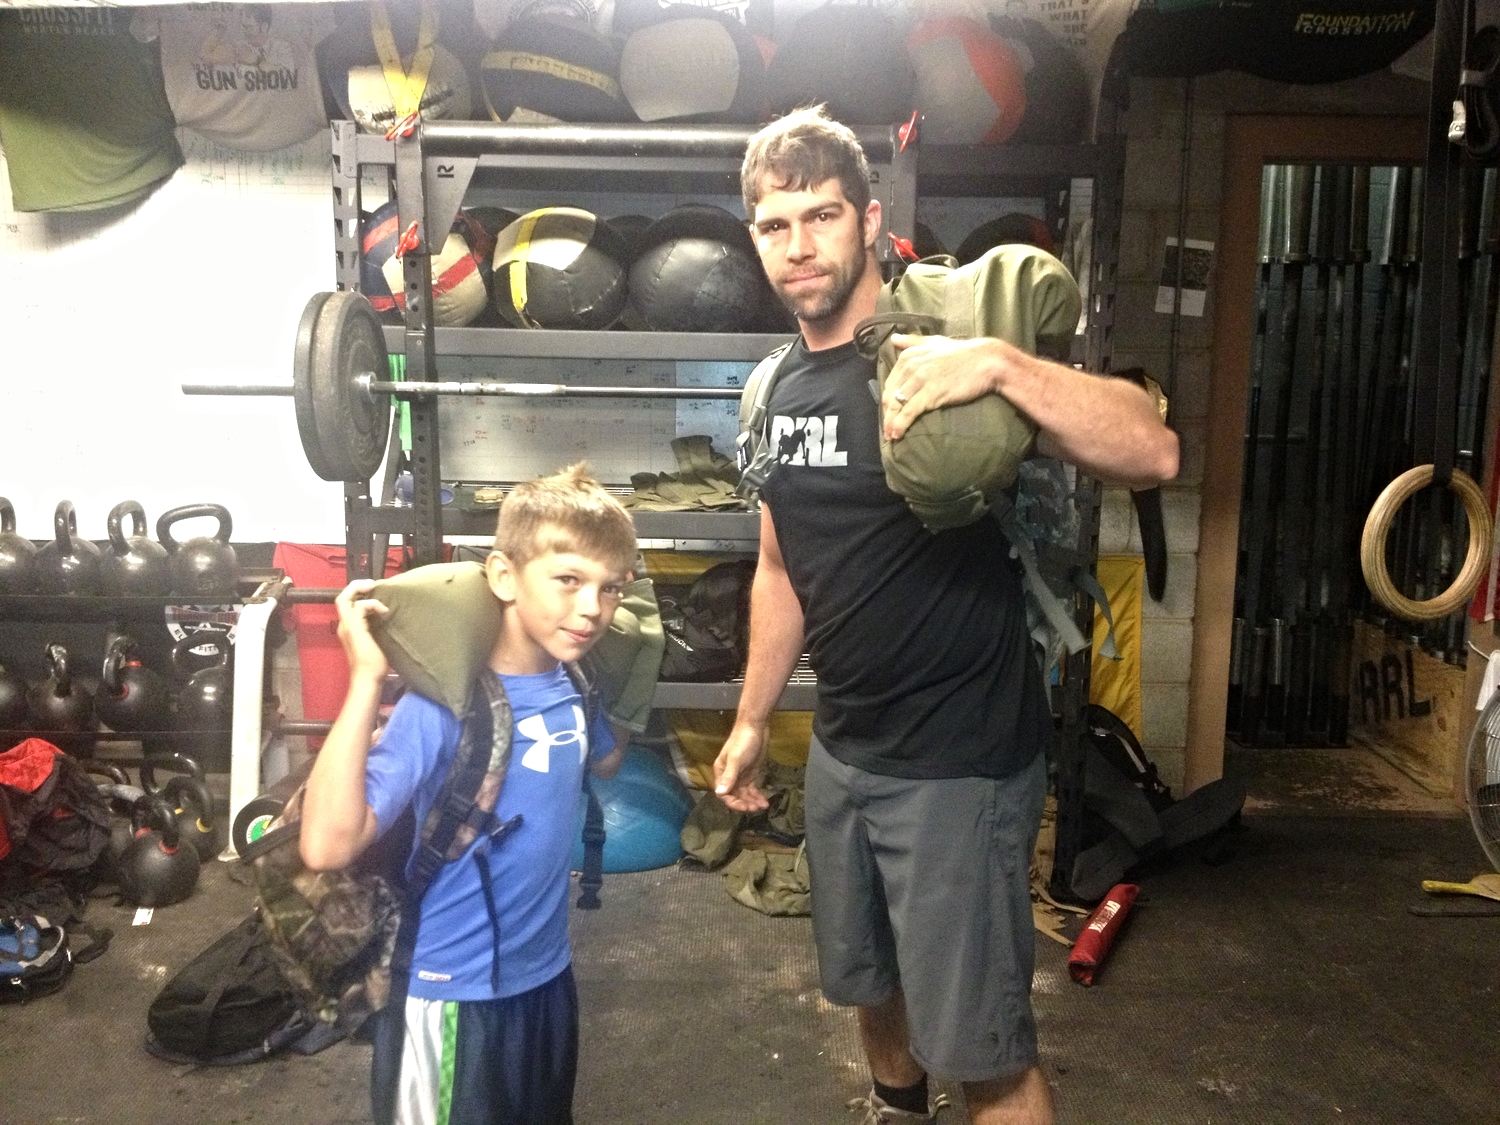 Great to have Trey back with us after his North Pacific trip. Yesterday, he brought his son, Grady.  This is how you scale a workout. Smaller ruck, smaller sandbag, same exercises. Good work Grady and Trey!